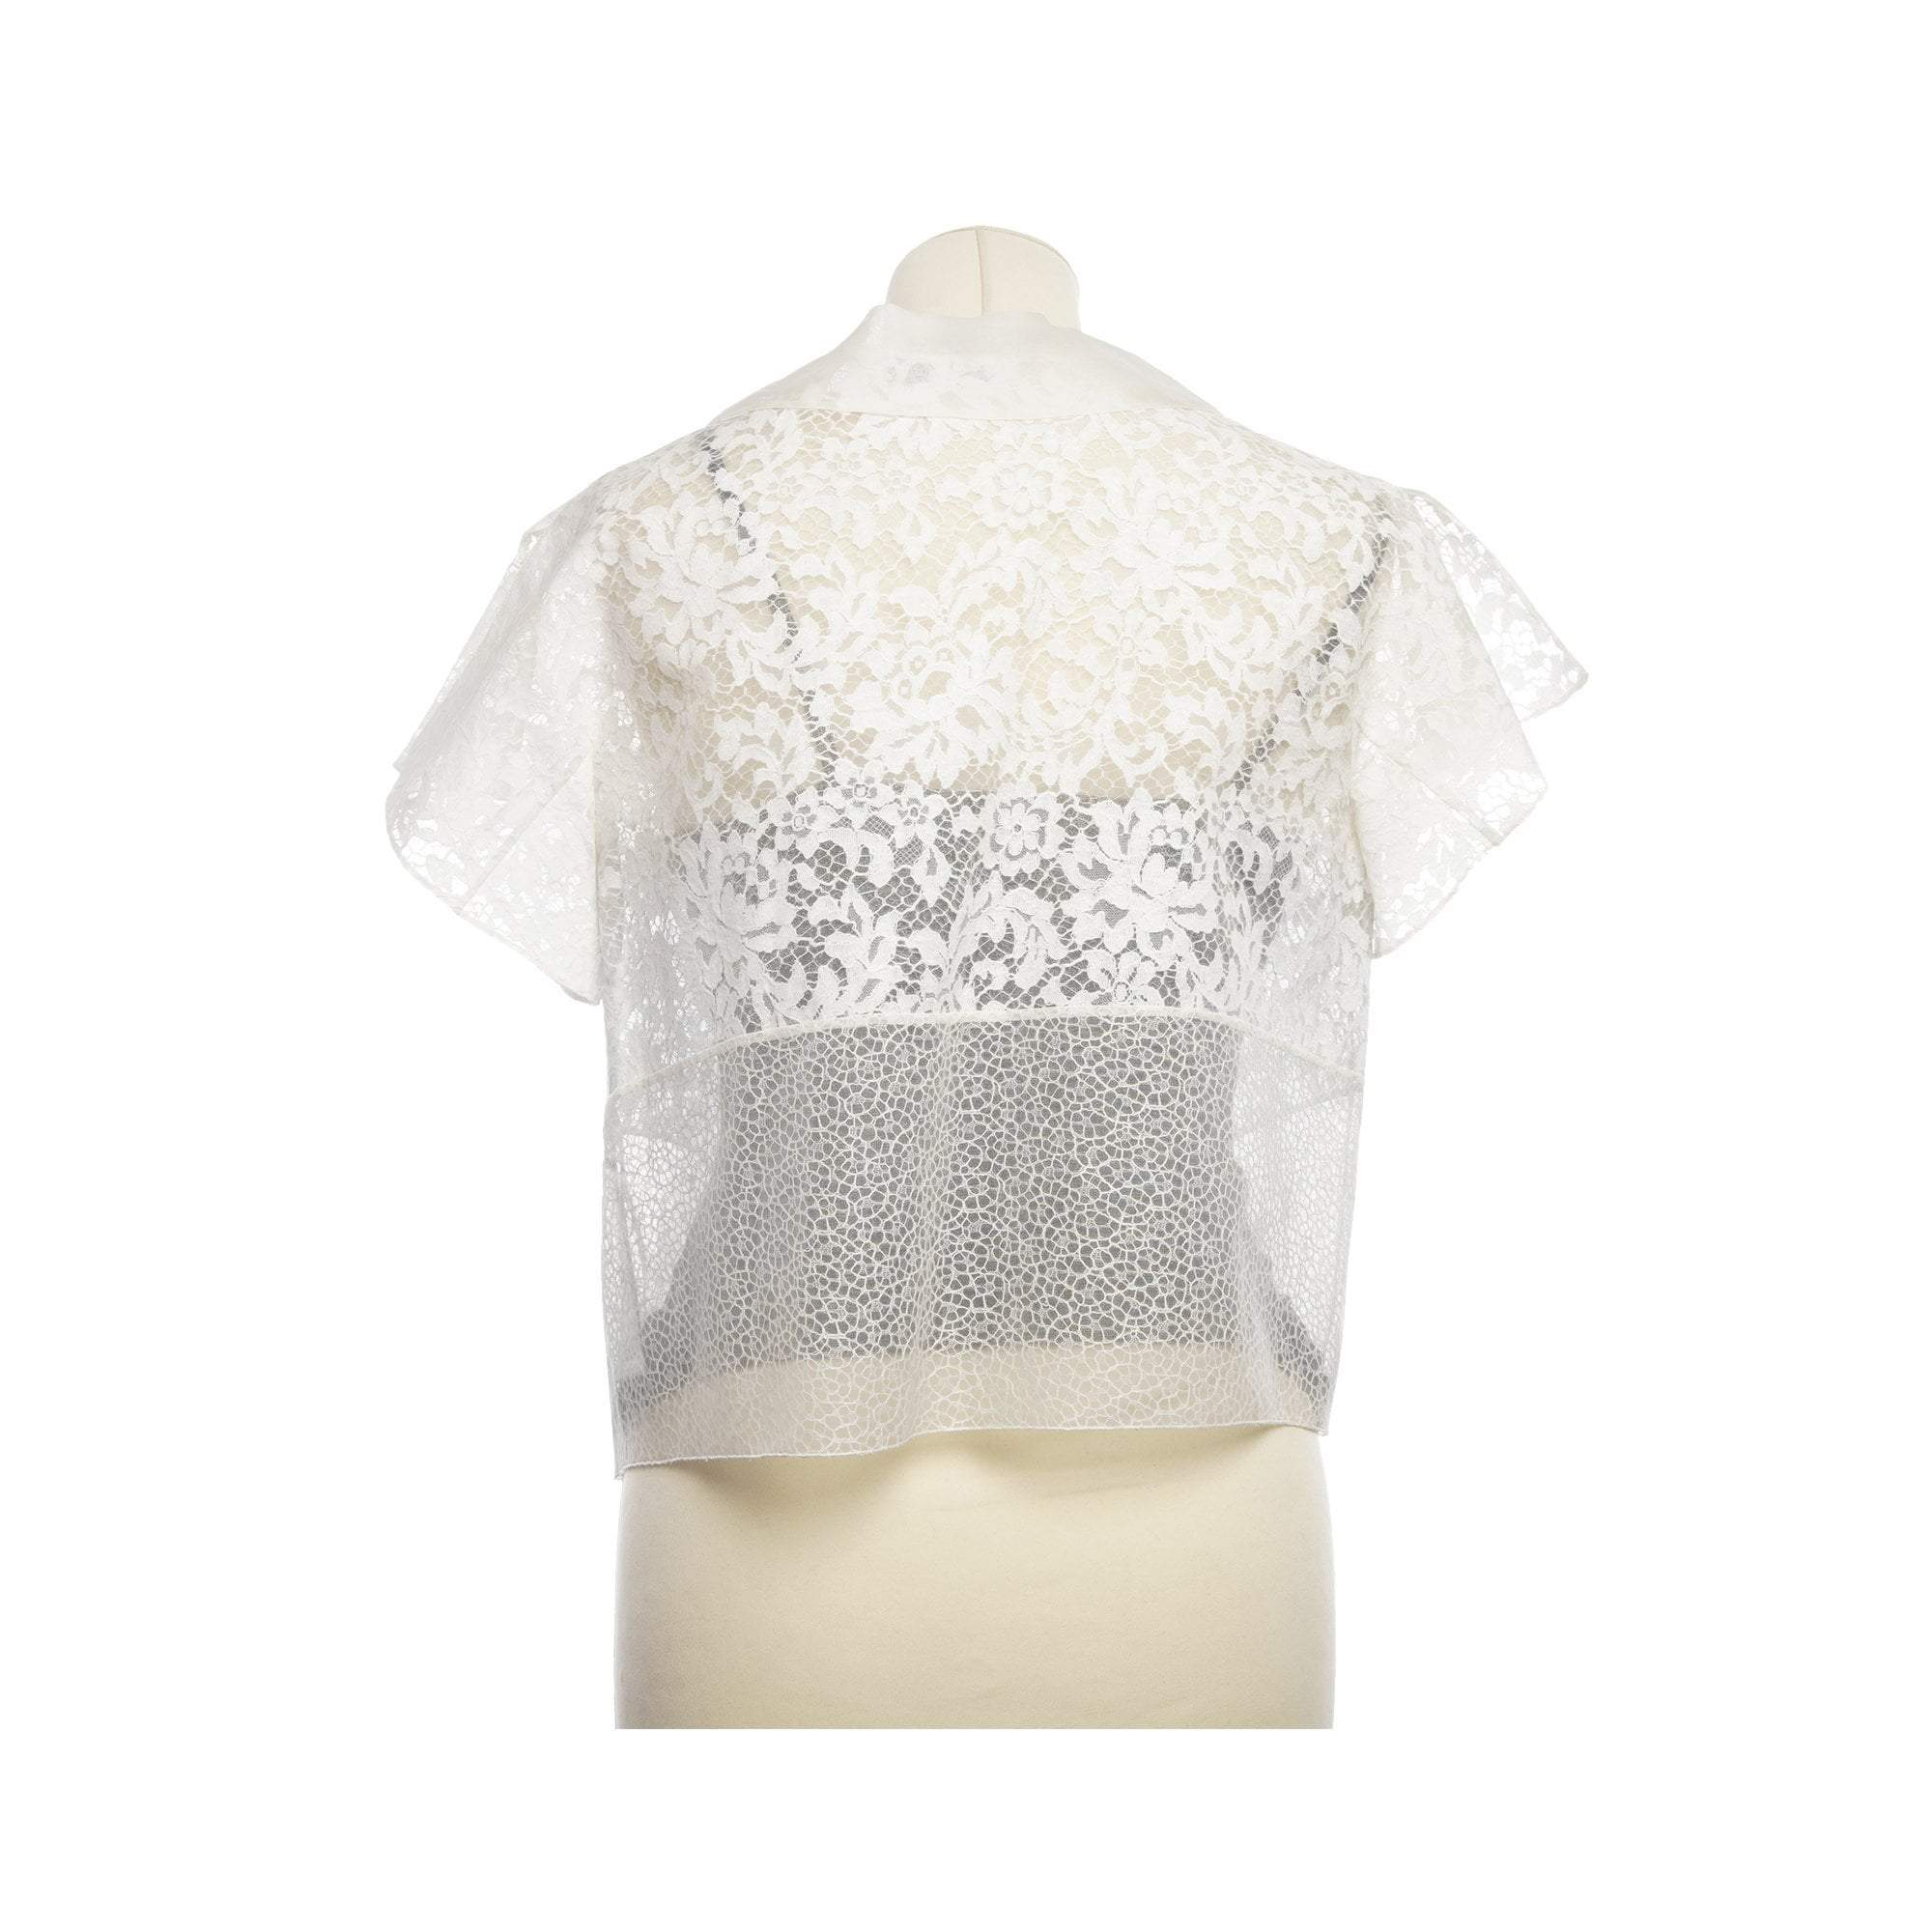 Christian Dior Lace Mesh Top